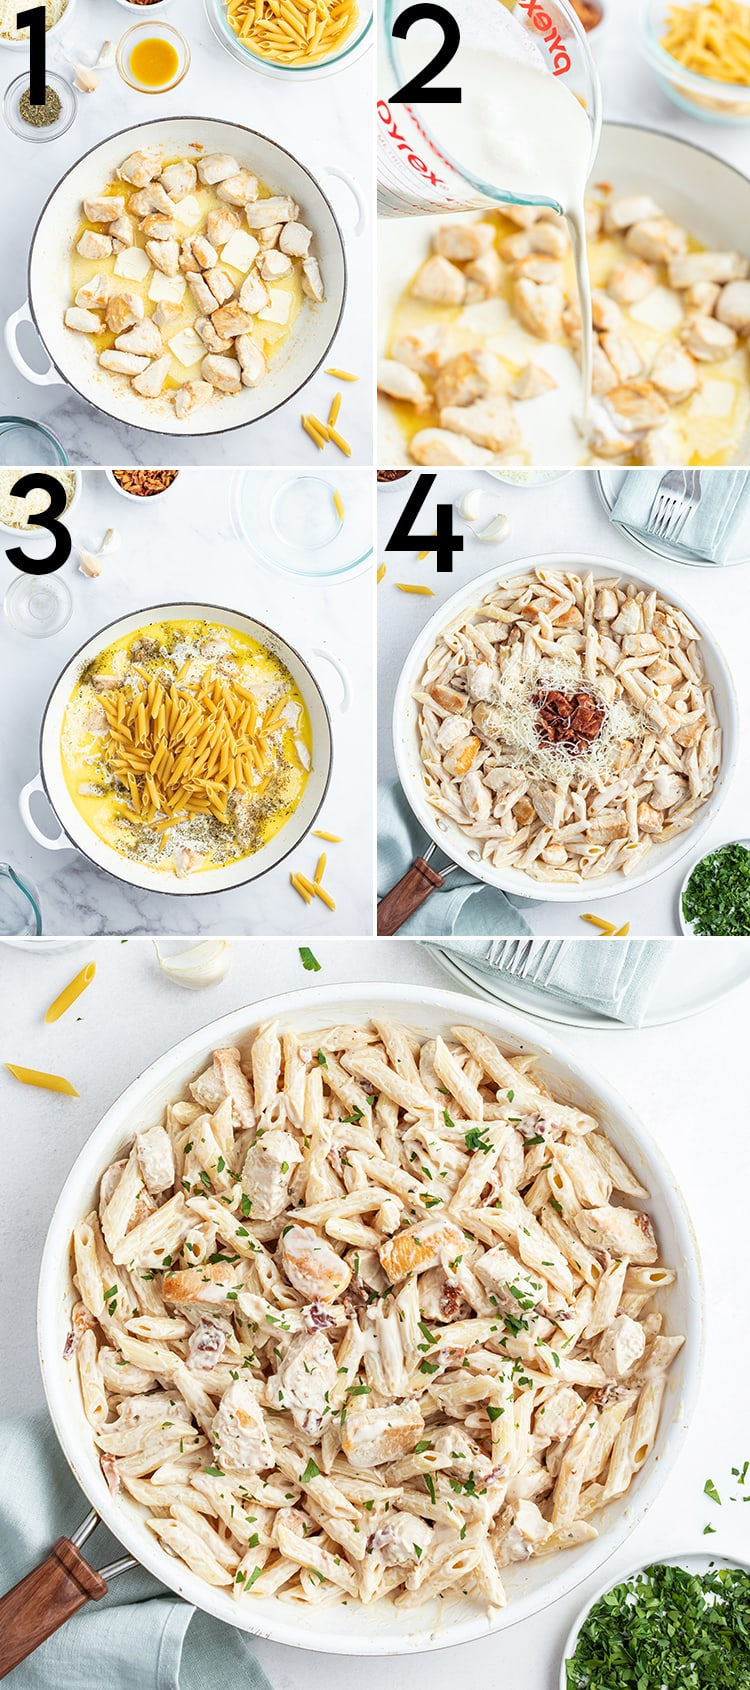 Step by step photos of how to make one pot chicken alfredo pasta, as described in the blog post.